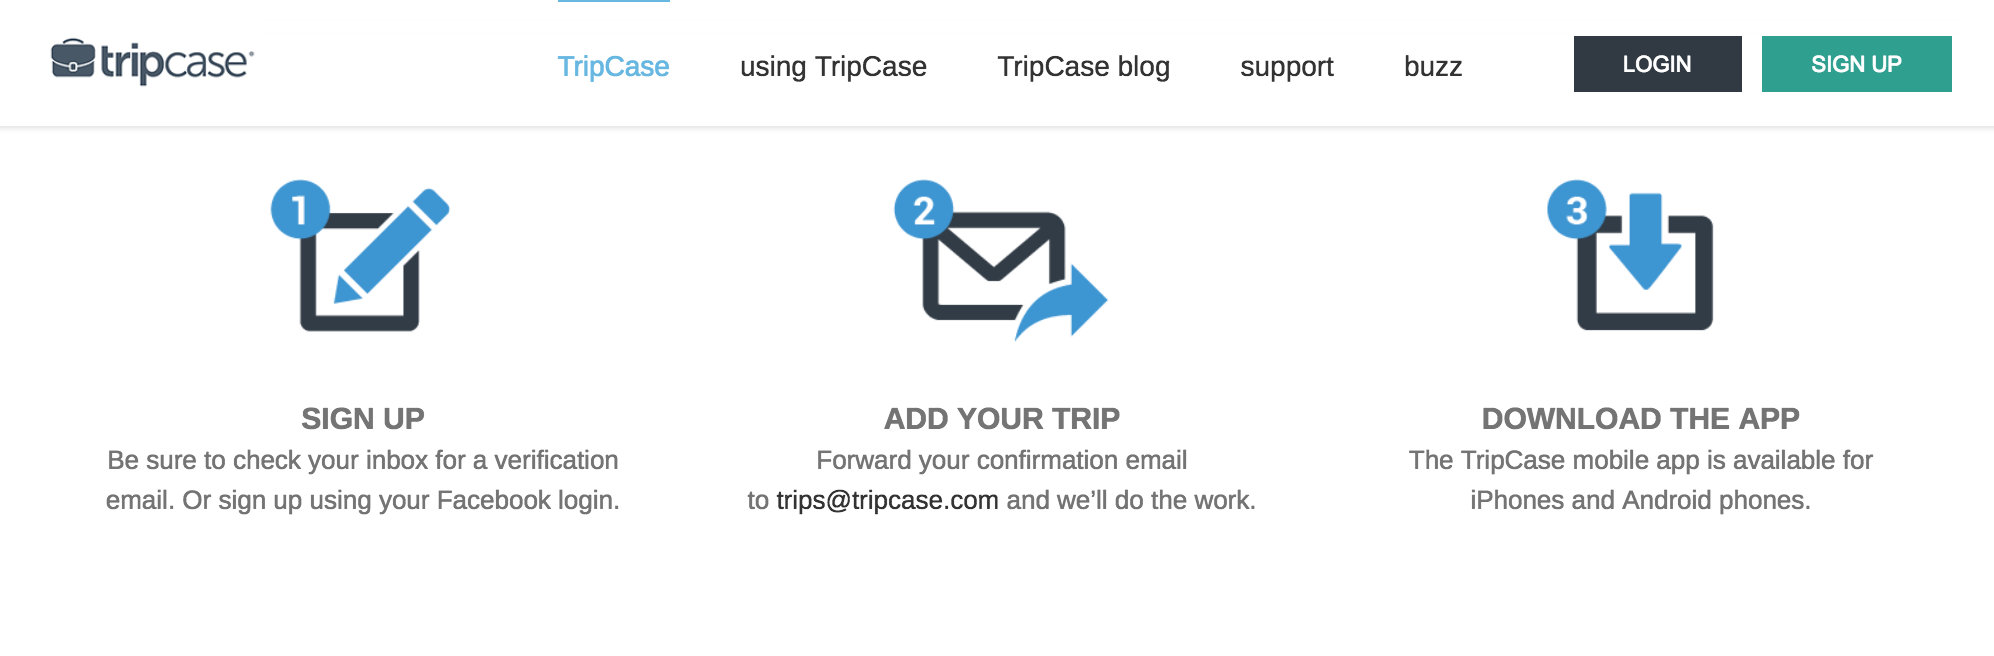 Trip Case travel site for travel organization